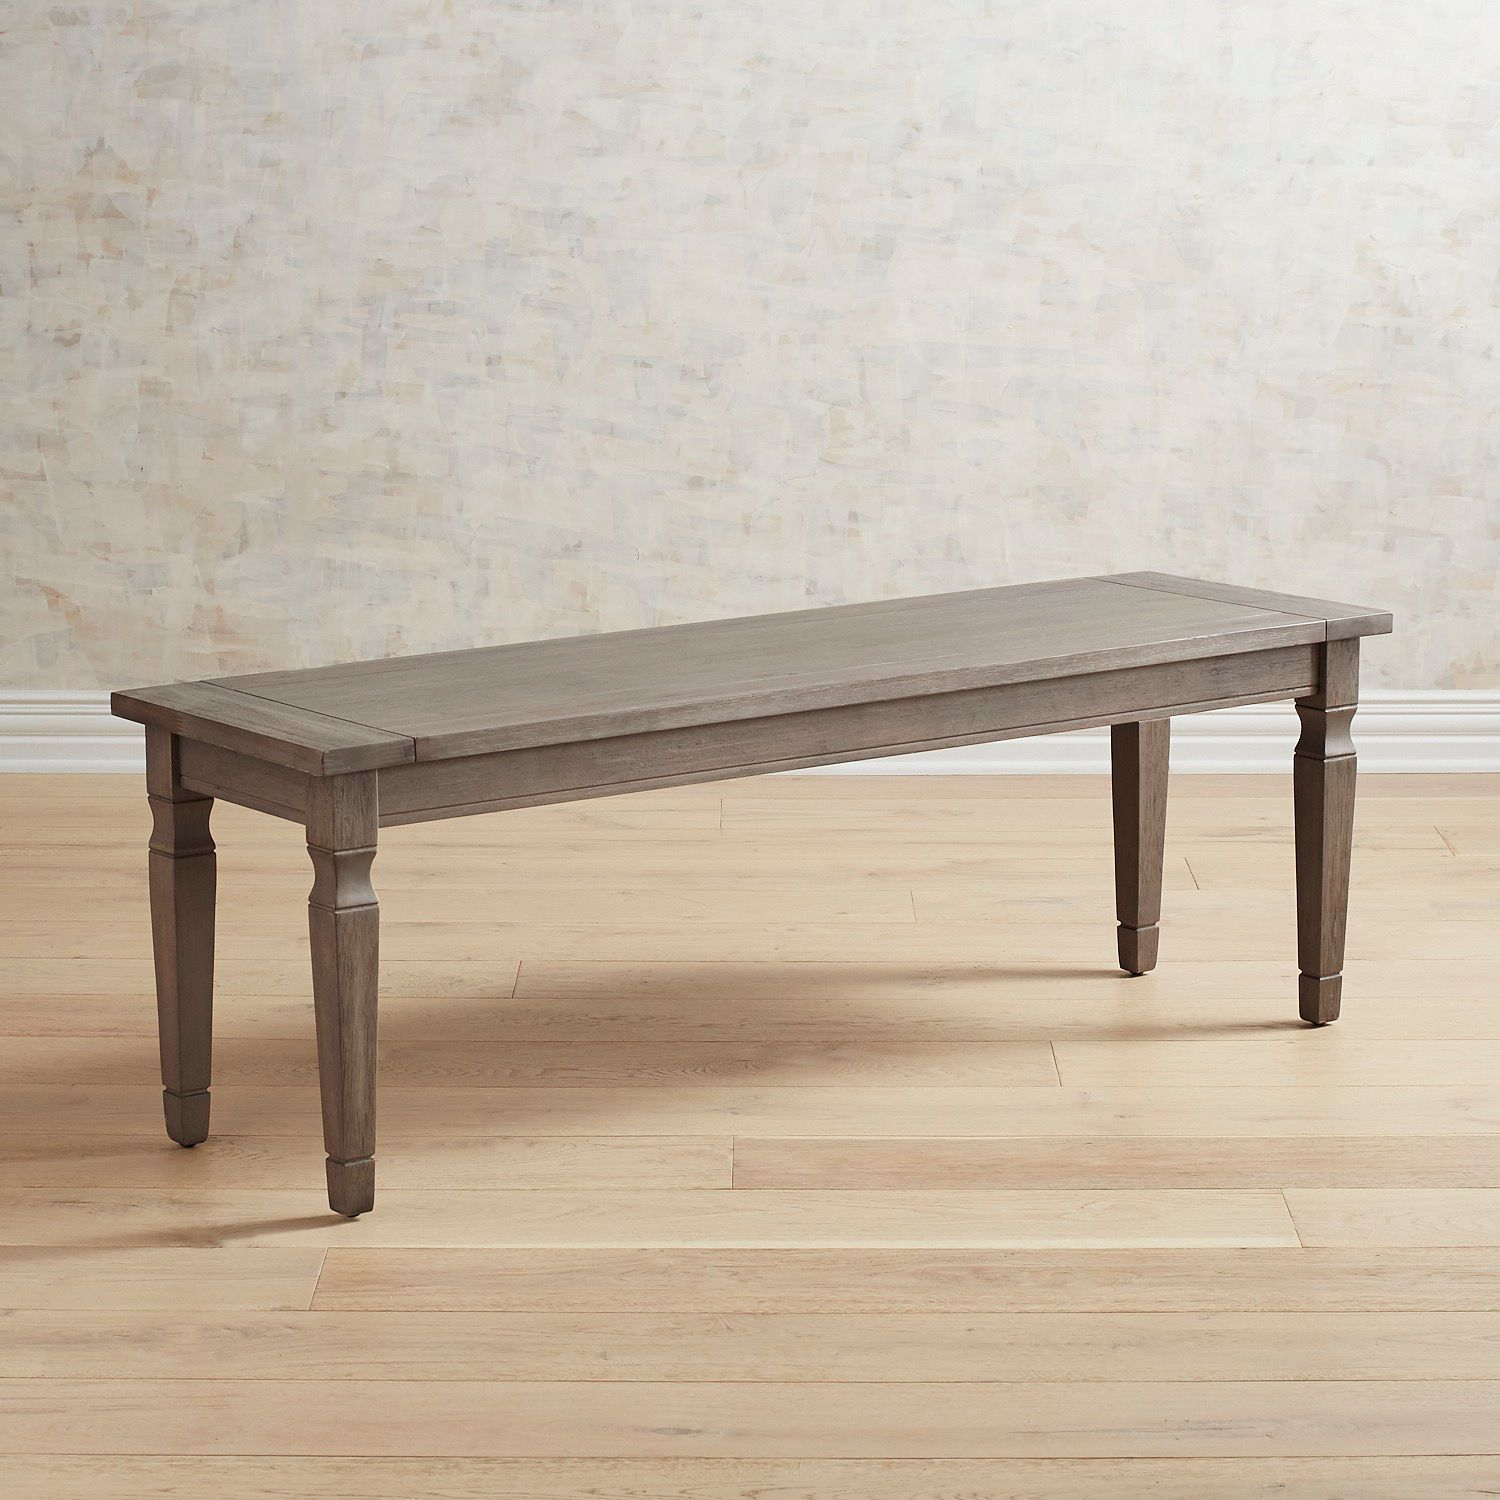 Miraculous Bradding Shadow Gray Bench Bench Pier 1 Dining Table Ocoug Best Dining Table And Chair Ideas Images Ocougorg